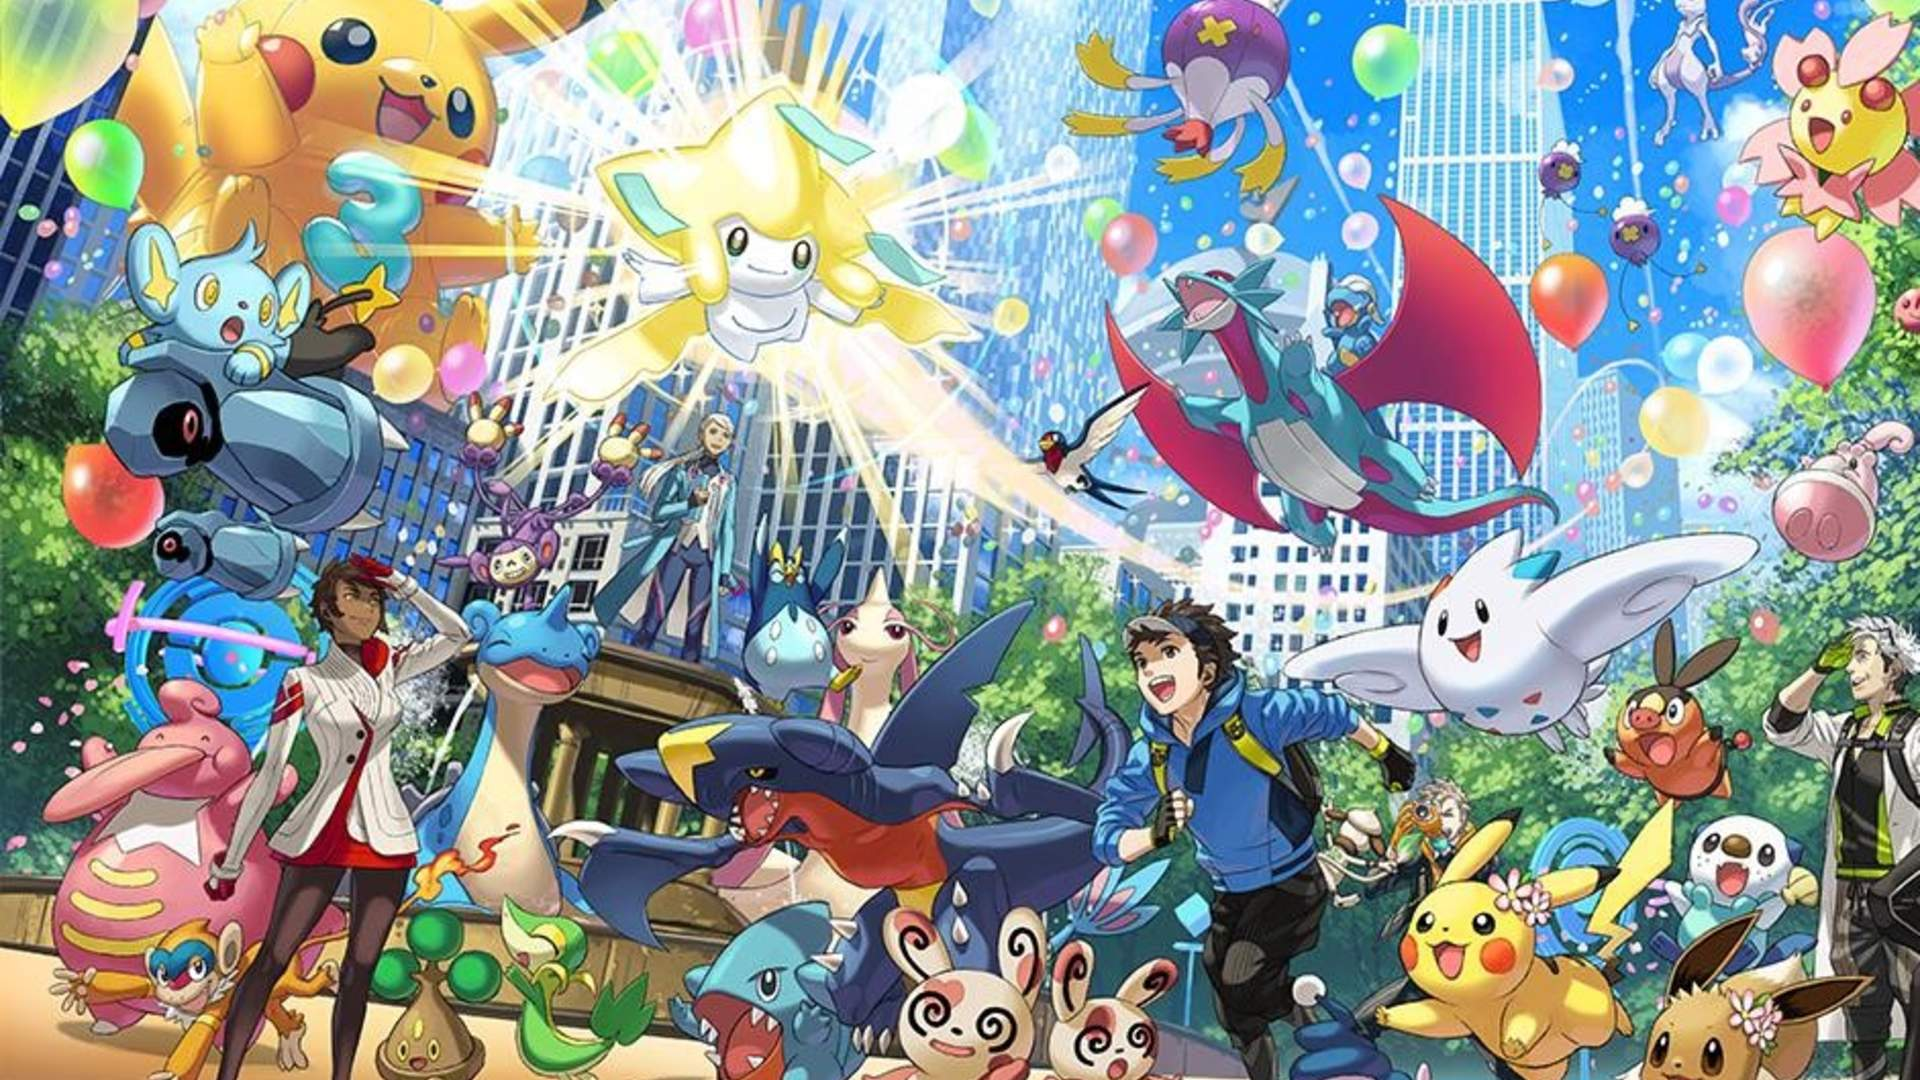 New Pokemon Nintendo Direct Coming Later This Week